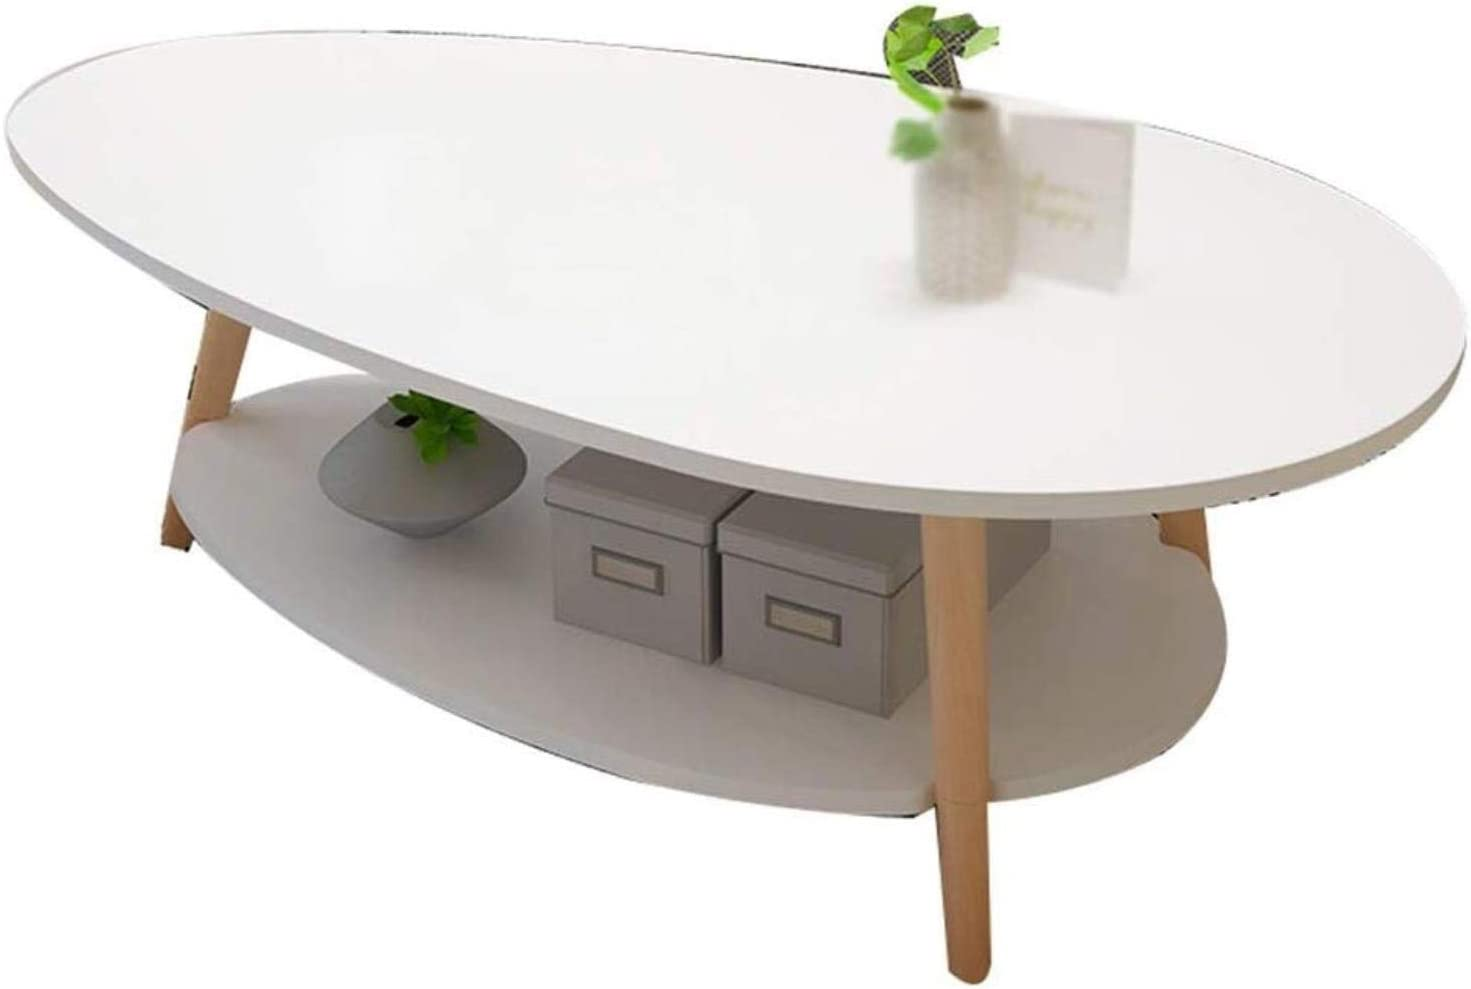 Small coffee table WGZ - Mesa de café con Forma de tropfeno ...